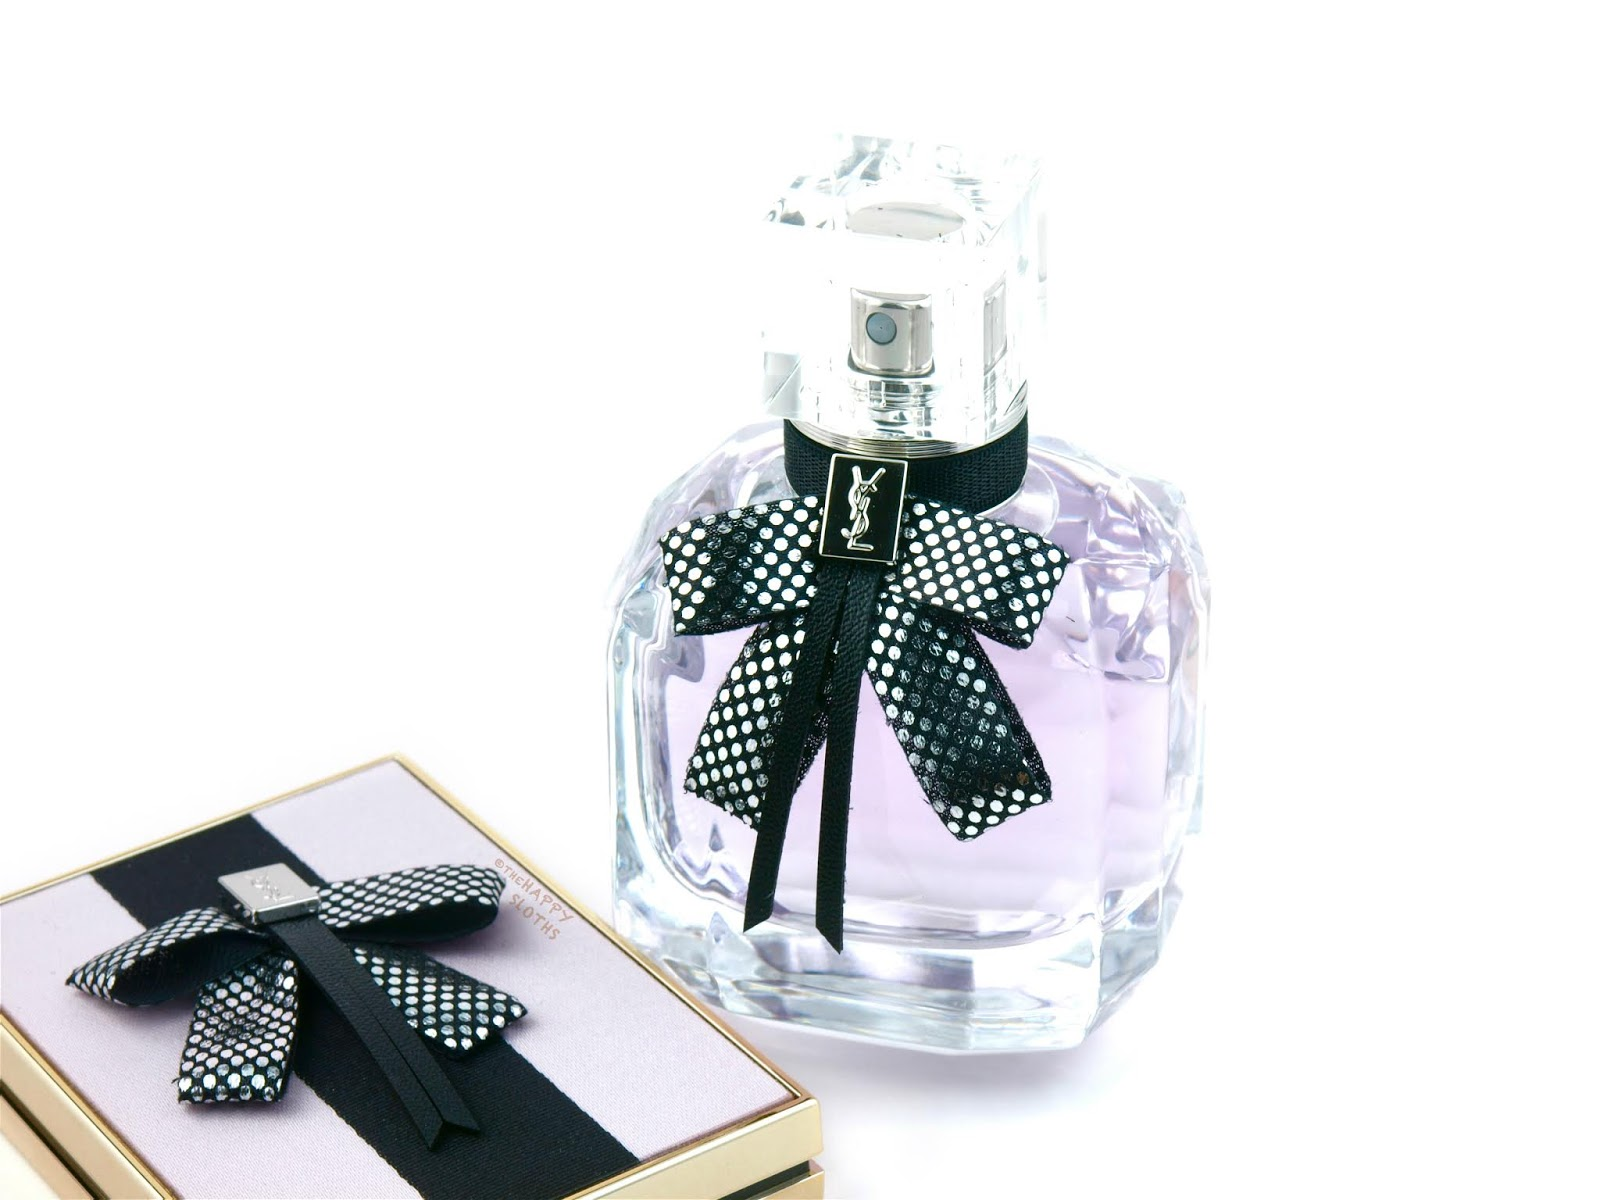 Yves Saint Laurent | Mon Paris Couture Eau de Parfum: Review